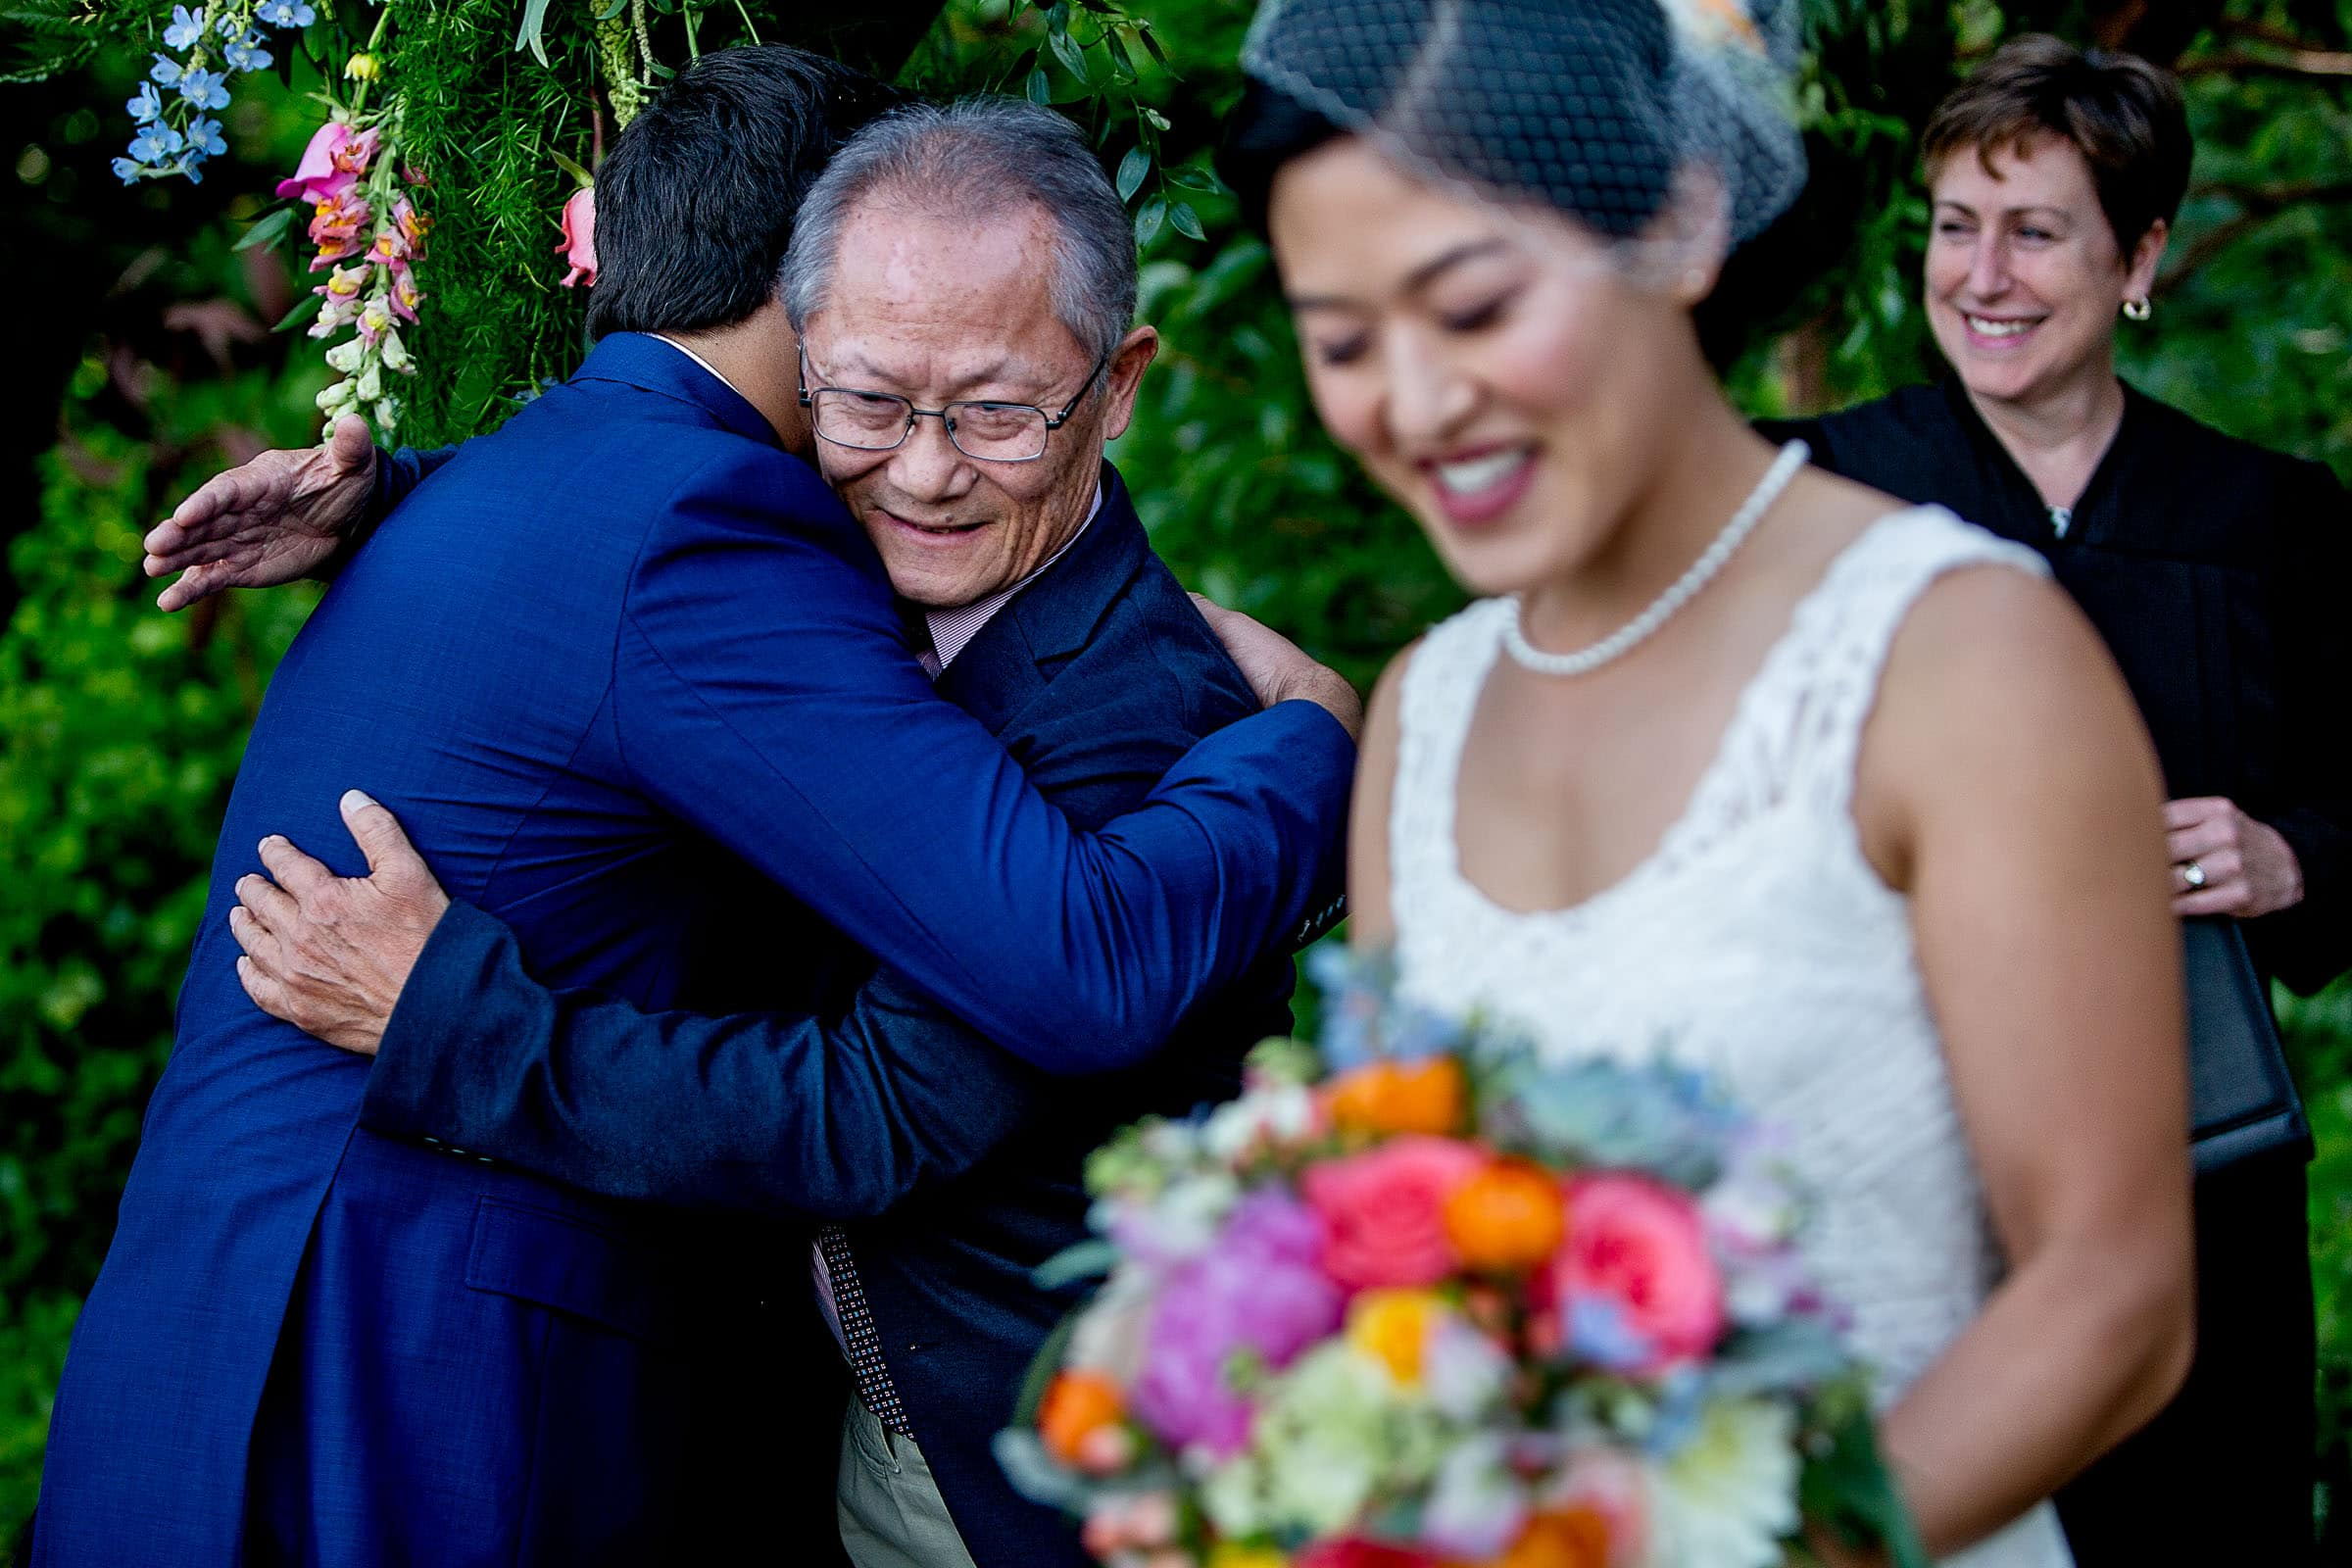 Father hugging groom during a private Seattle elopement ceremony